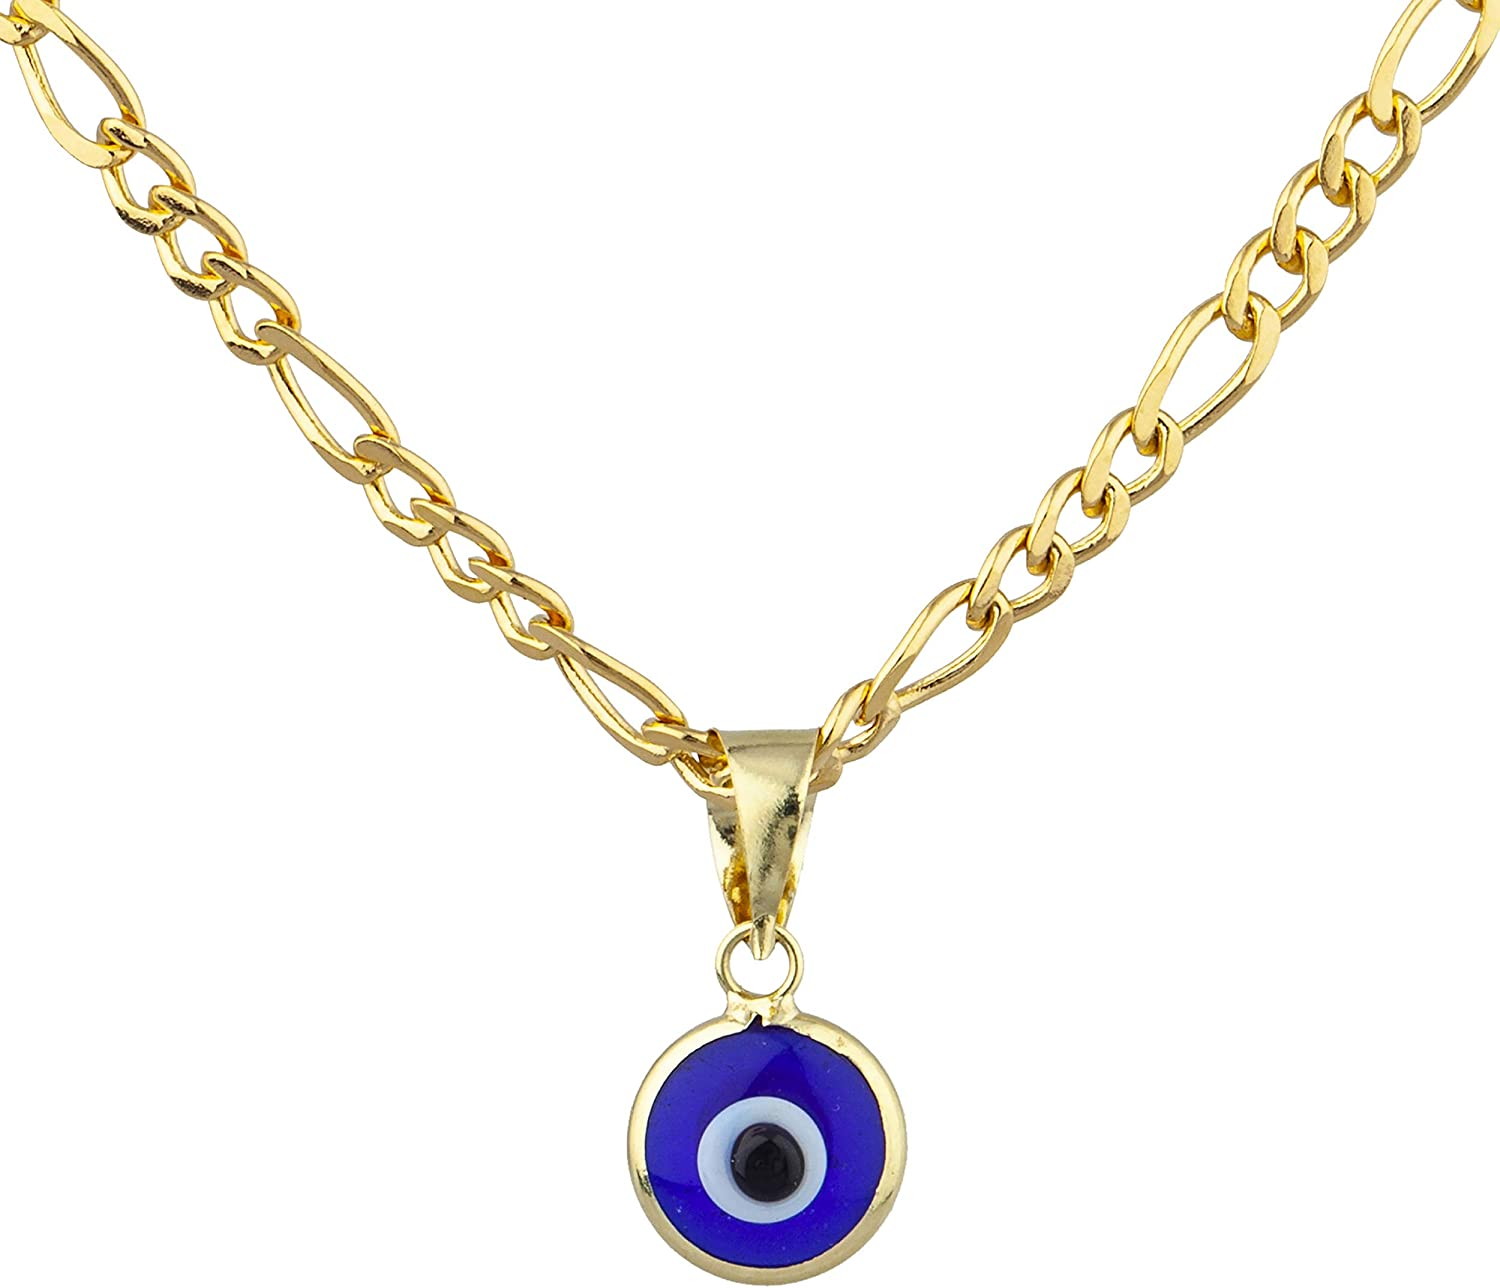 JOTW 14k Yellow Gold Round Evil Eye Charm Pendant Necklace with 18 inch Figaro